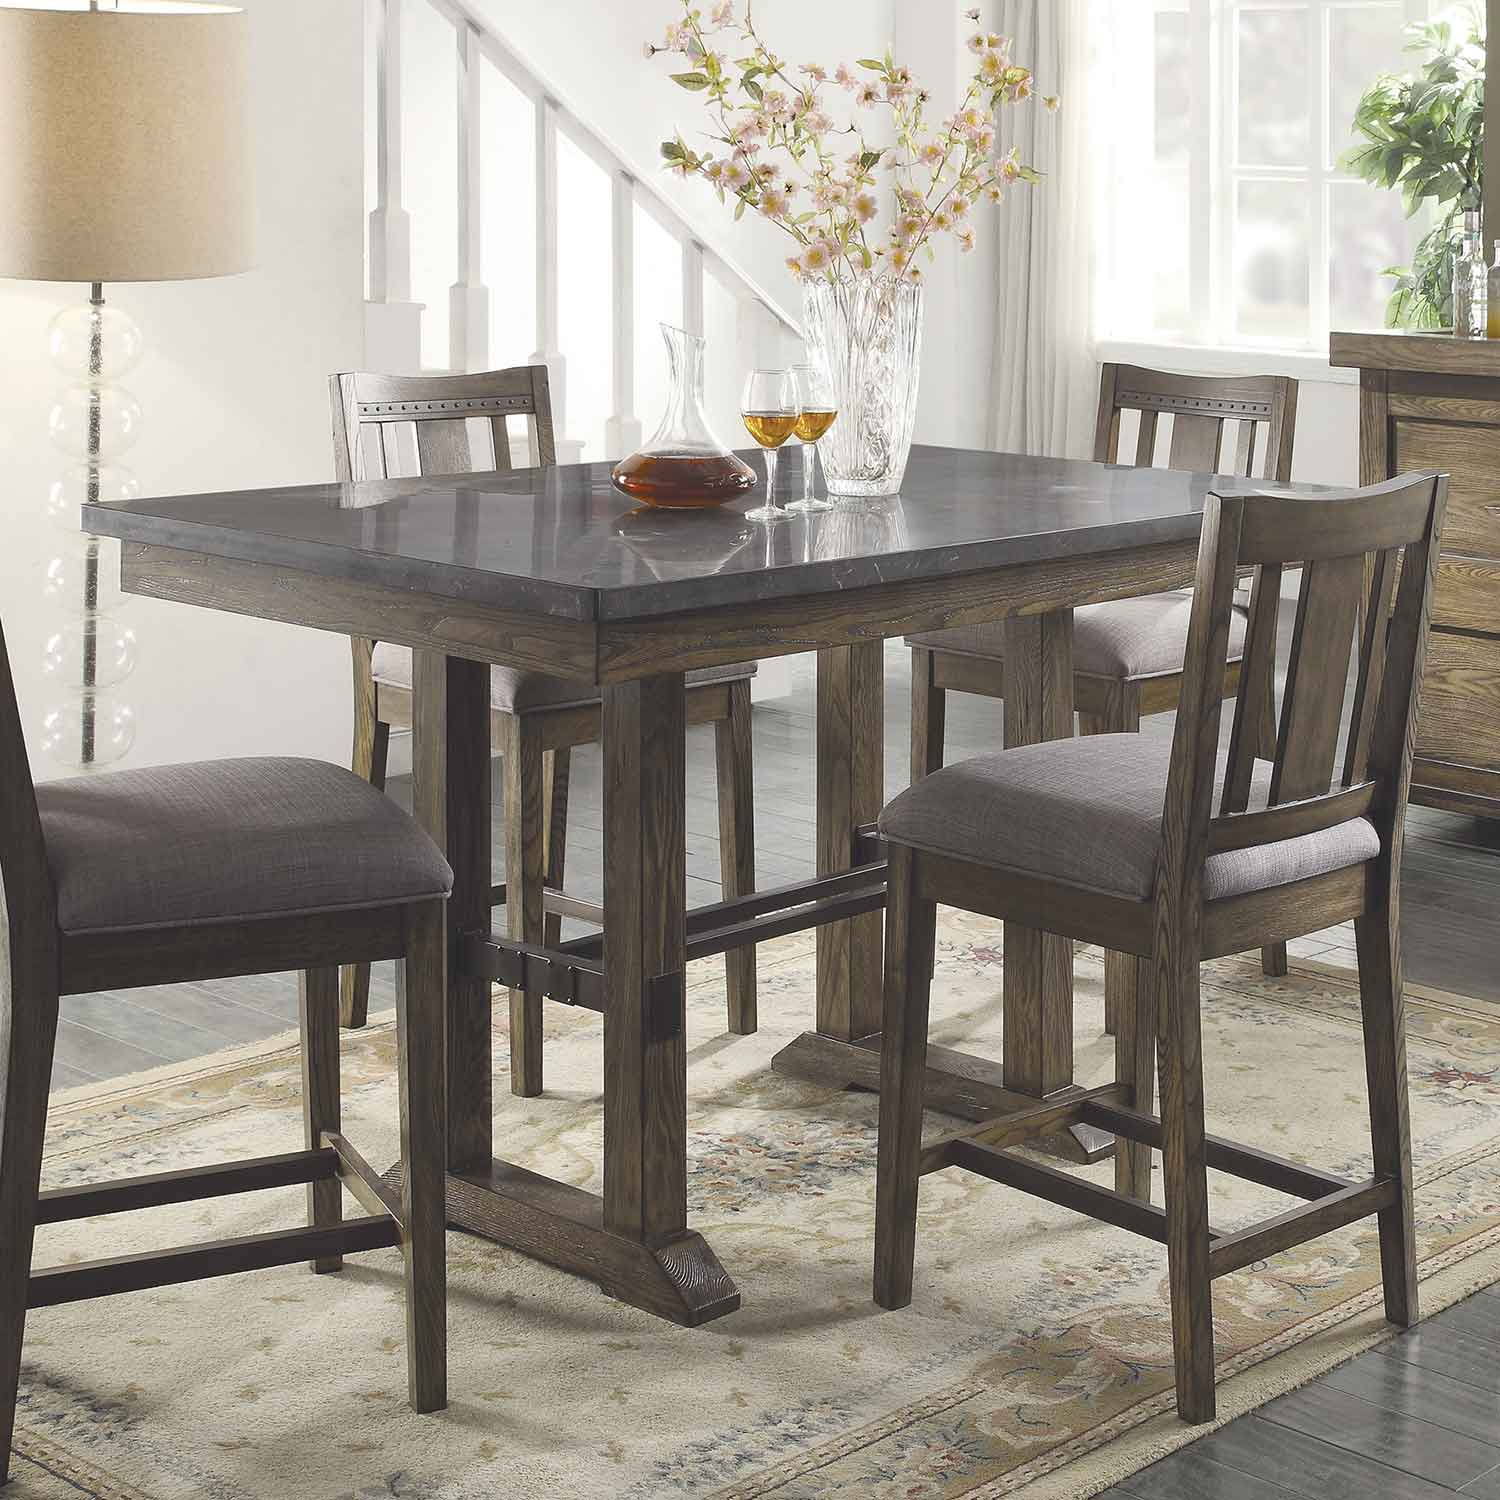 Coaster Lexton 101561 Rectangular Dining Table With 18: Coaster Willowbrook Rectangular Counter Height Table